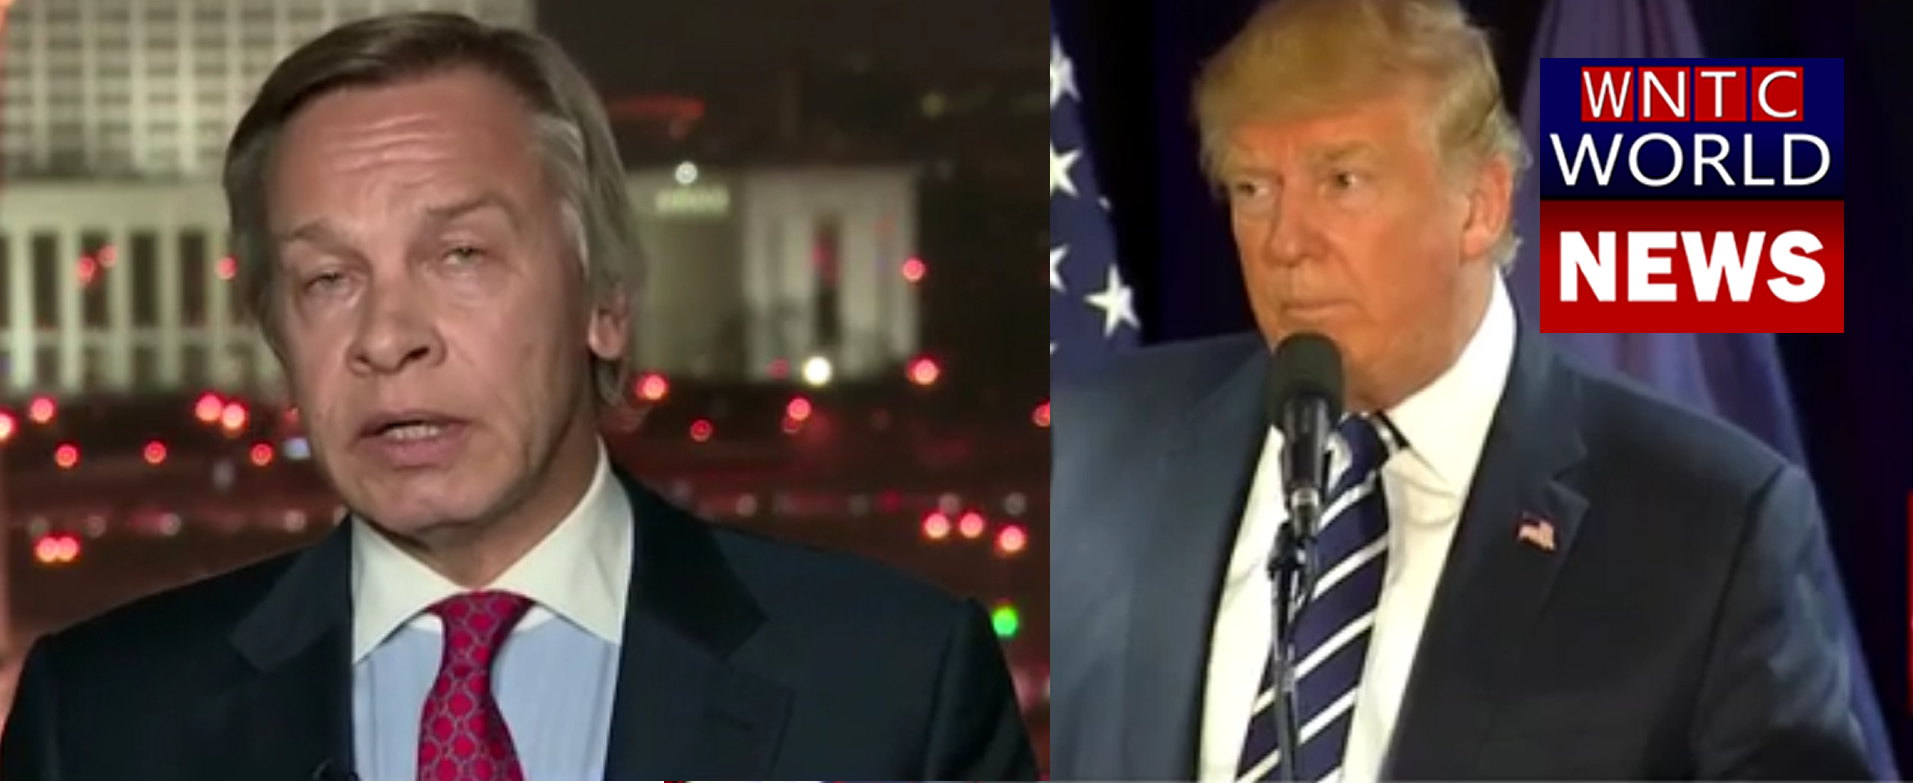 World News Tomorrow pushkov-about-the-us